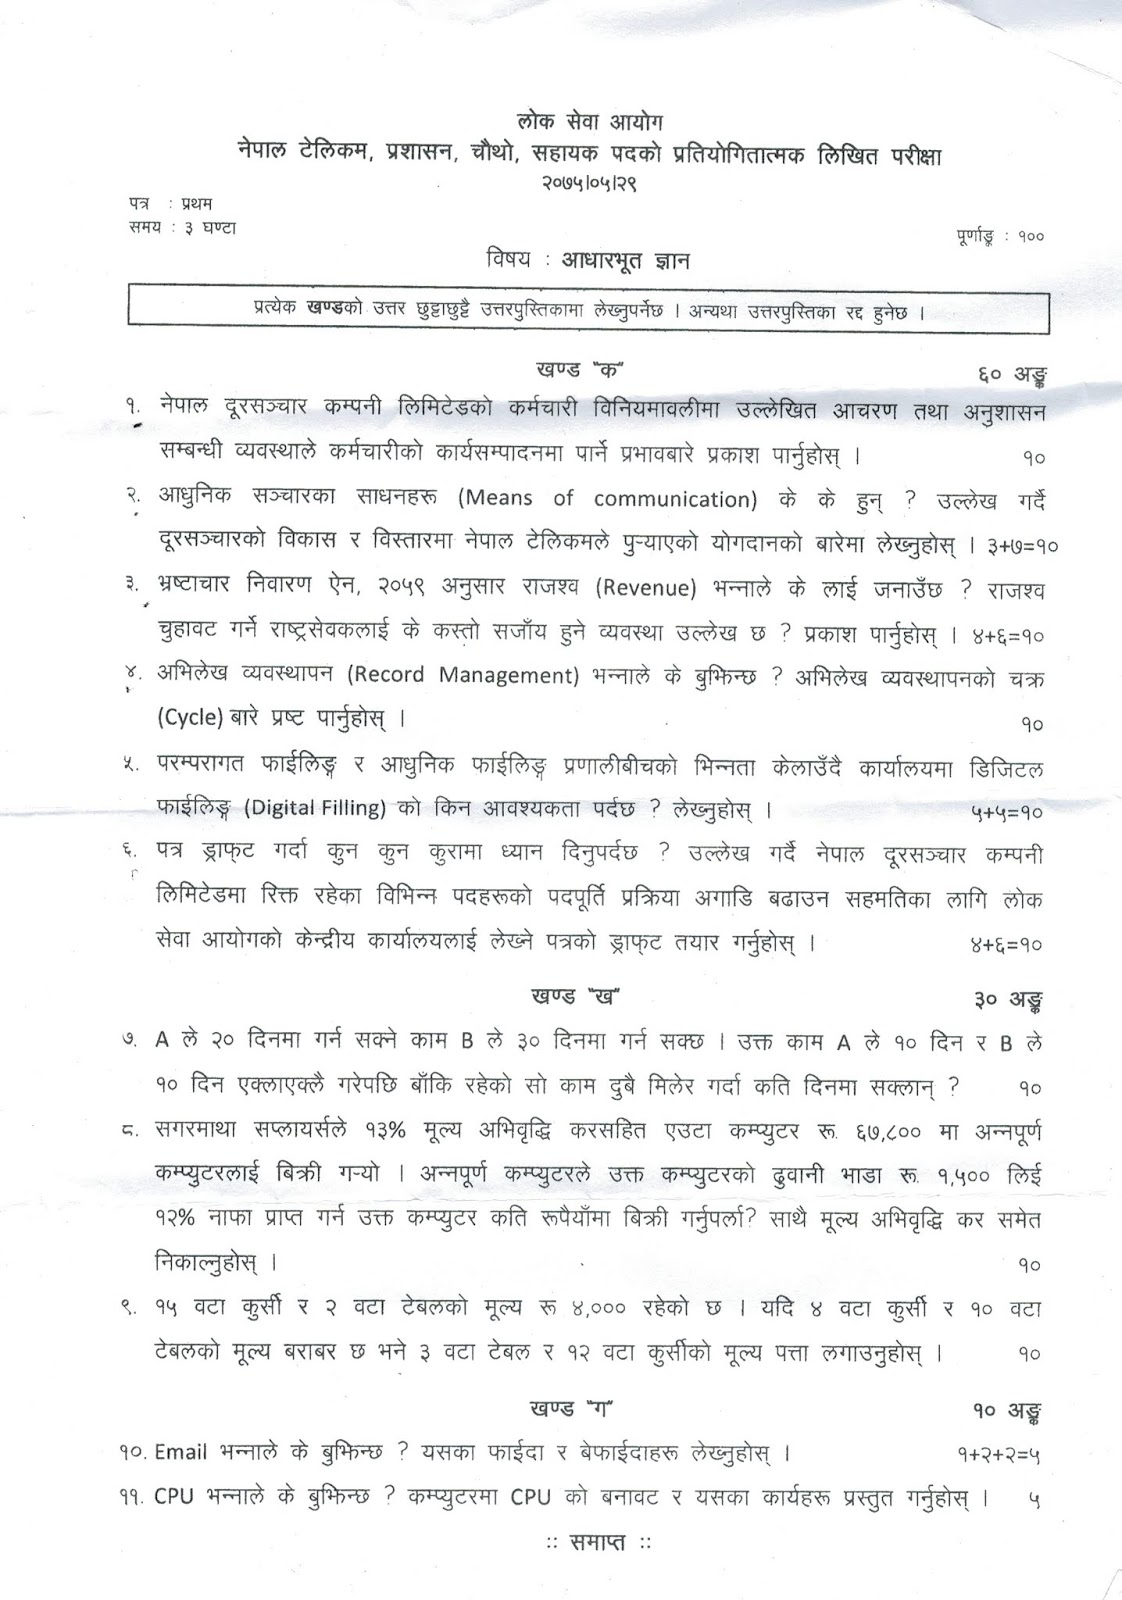 Nepal Telecom Assistant Level 4 Examination Paper 2075 with Solution of Numericals